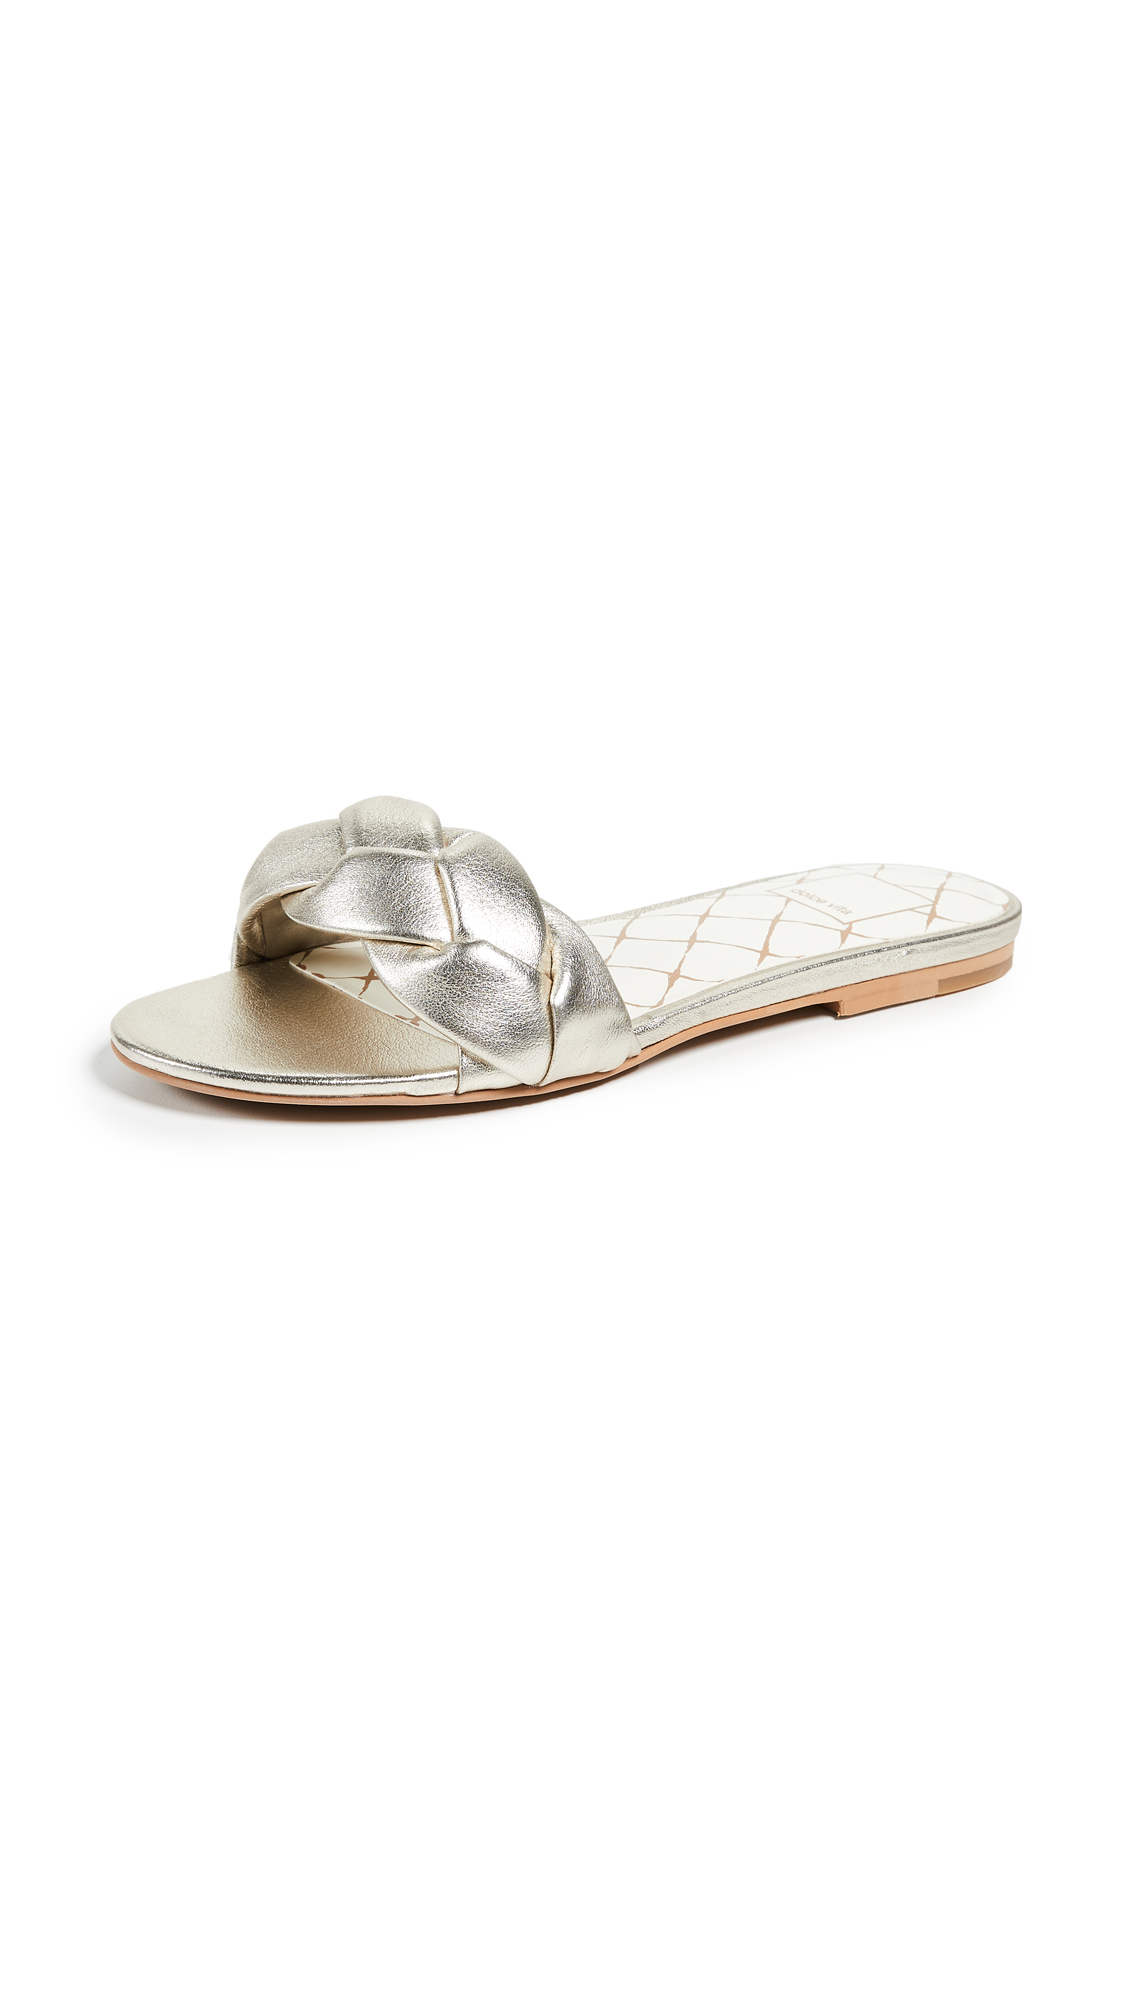 Dolce Vita Kimana Braided Sandals - Light Gold